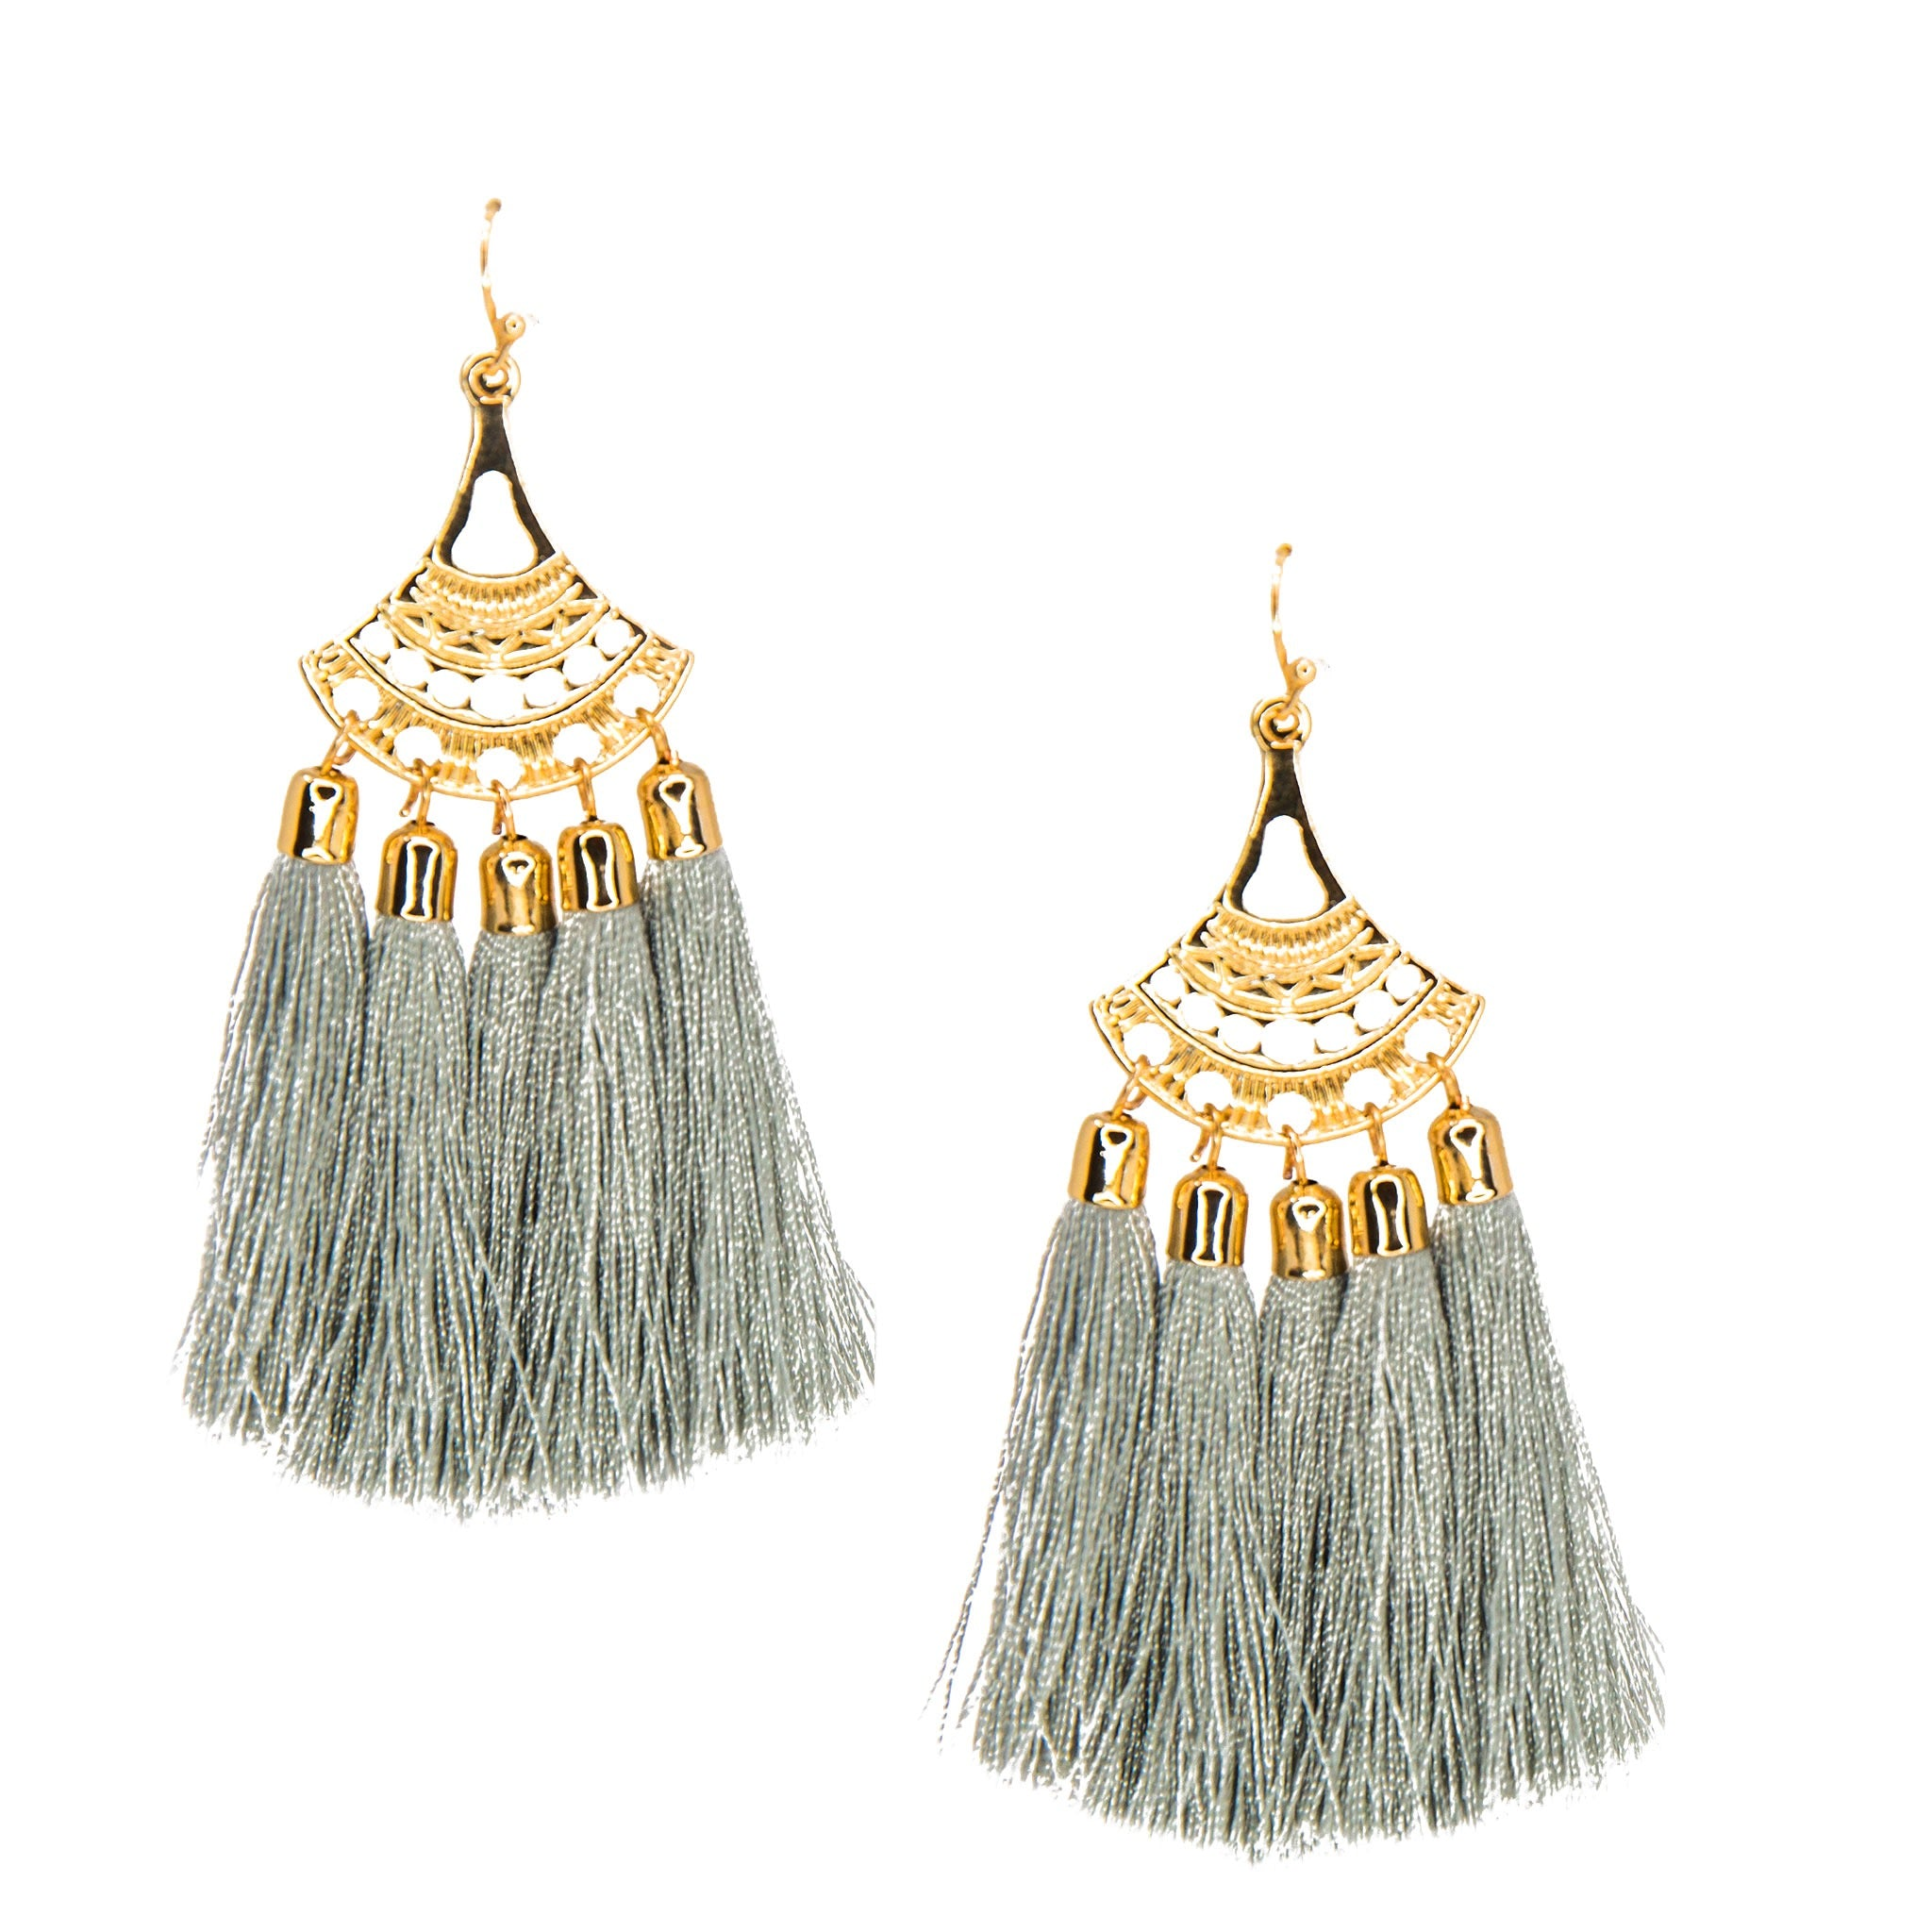 scene house chandelier the earrings final jewellery of earring cuzco shop harlow